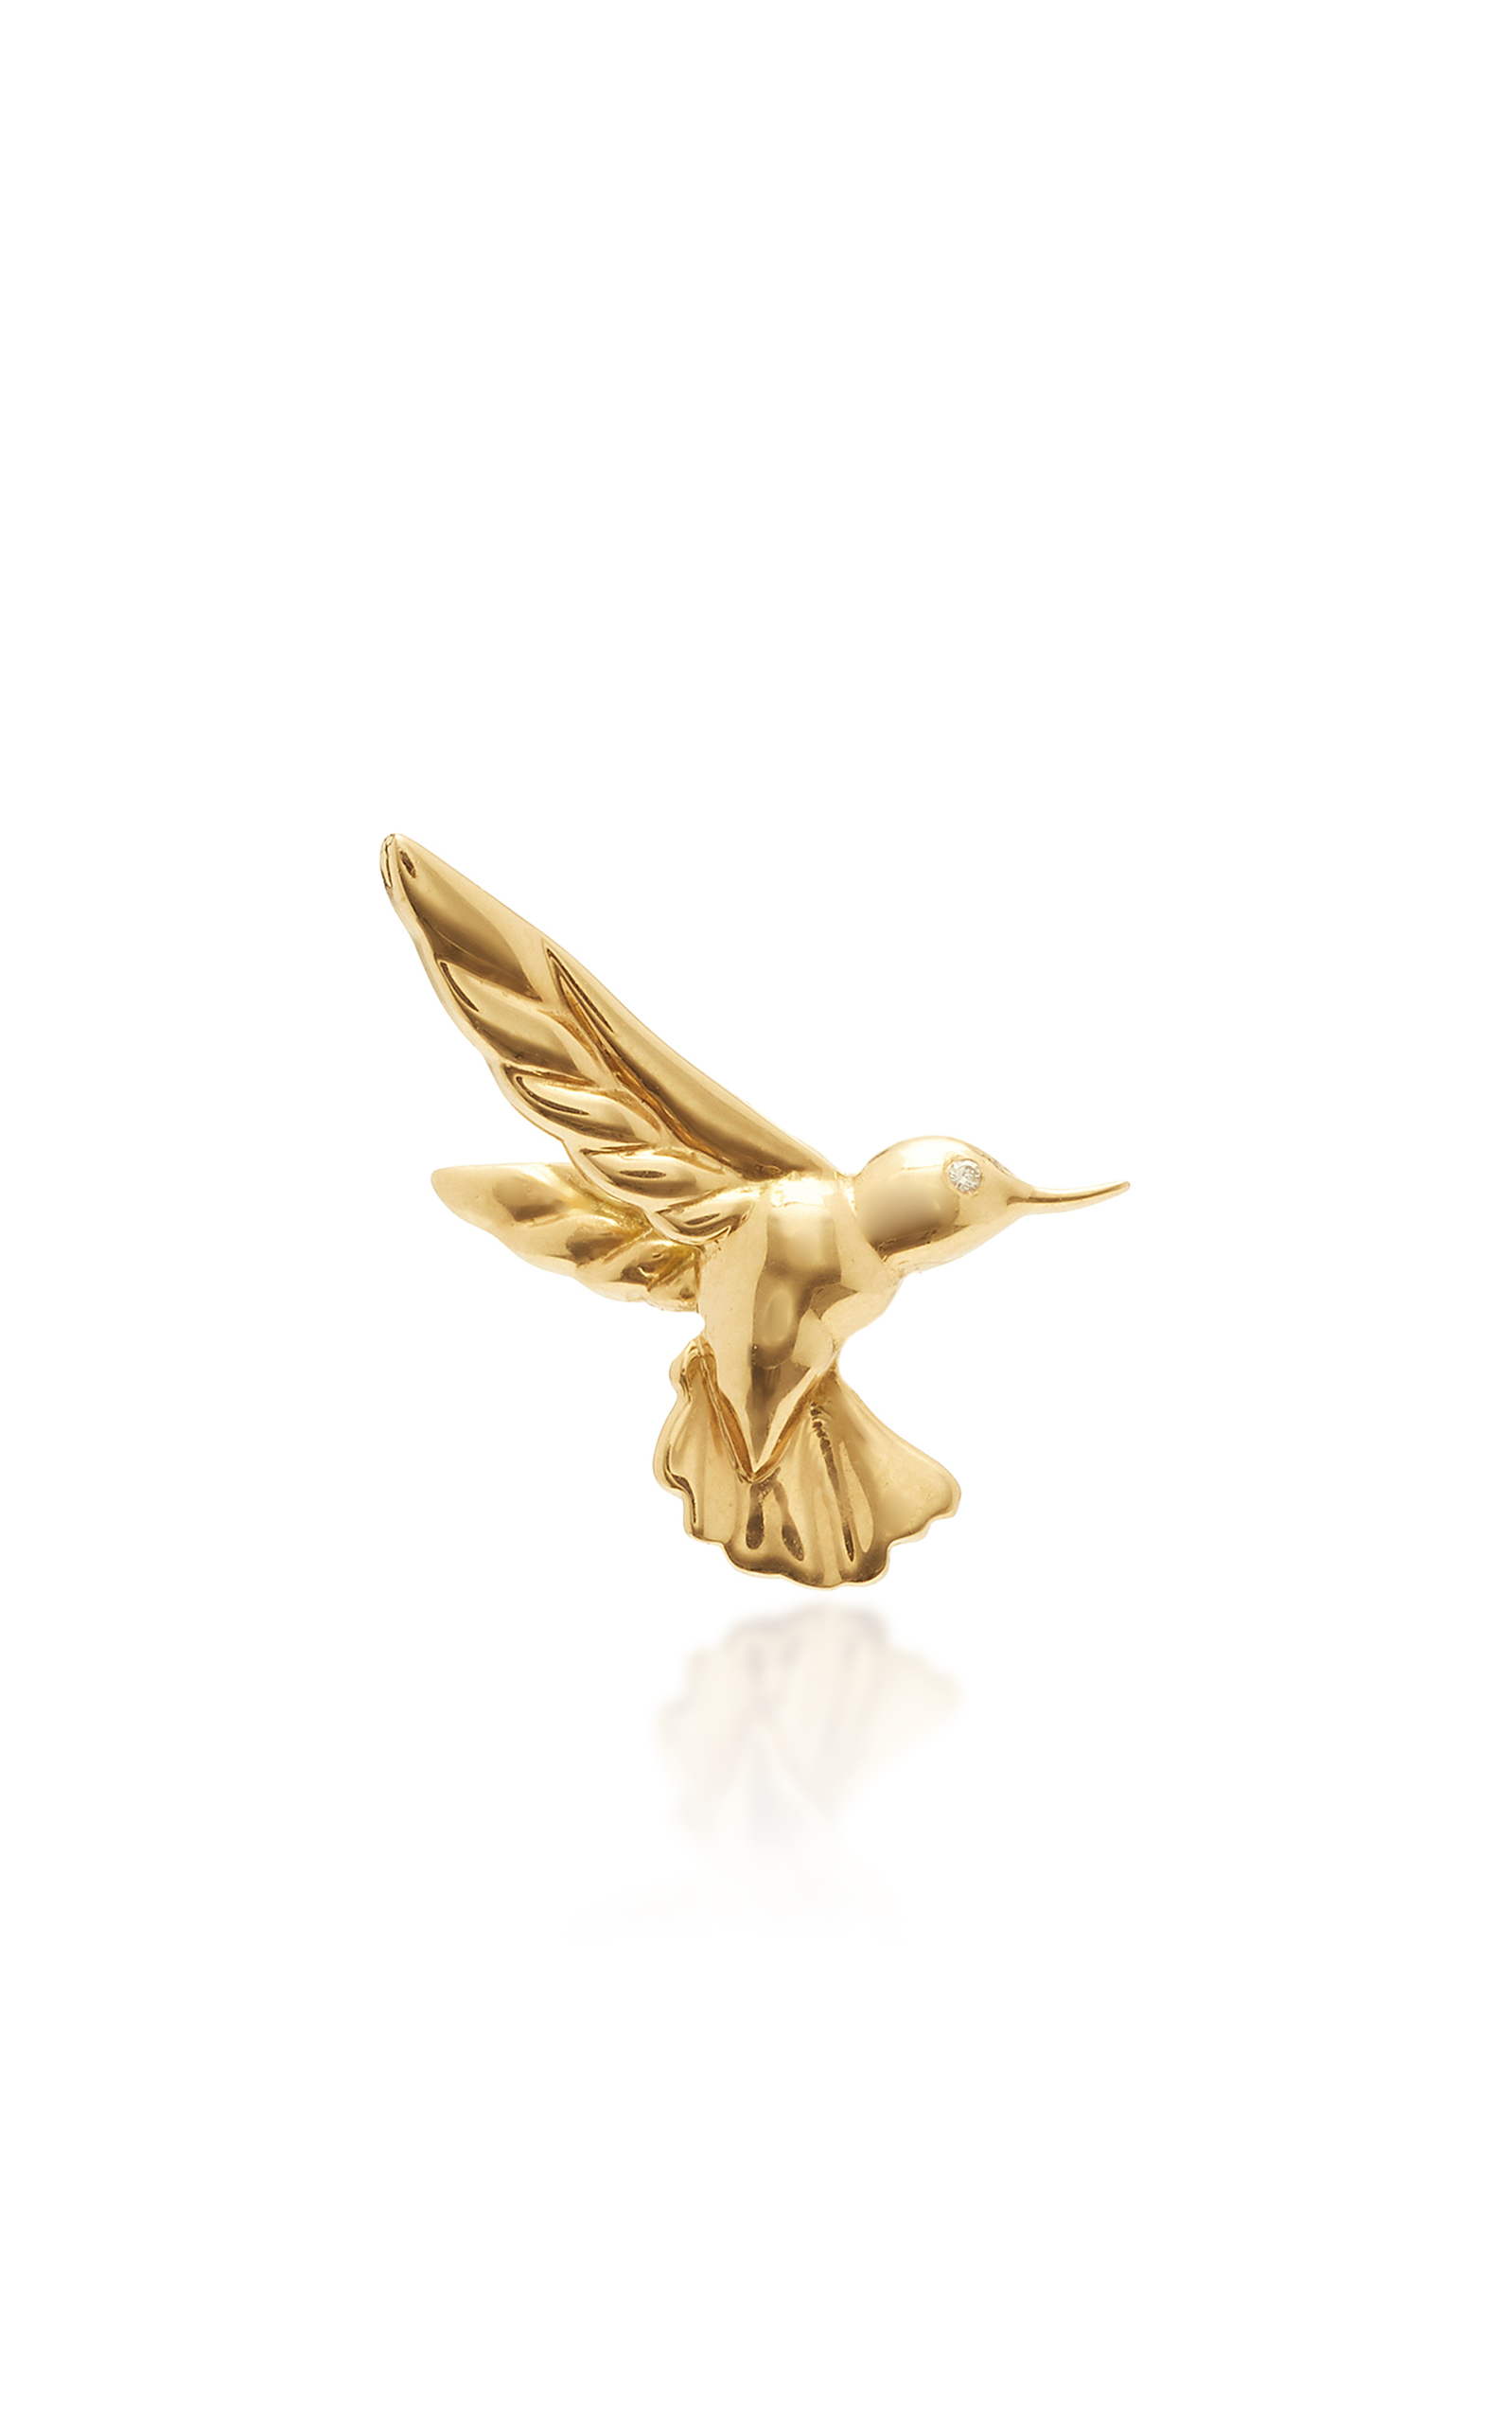 BRENT NEALE M'O EXCLUSIVE SINGLE HUMMINGBIRD EARRING FOR LEFT EAR